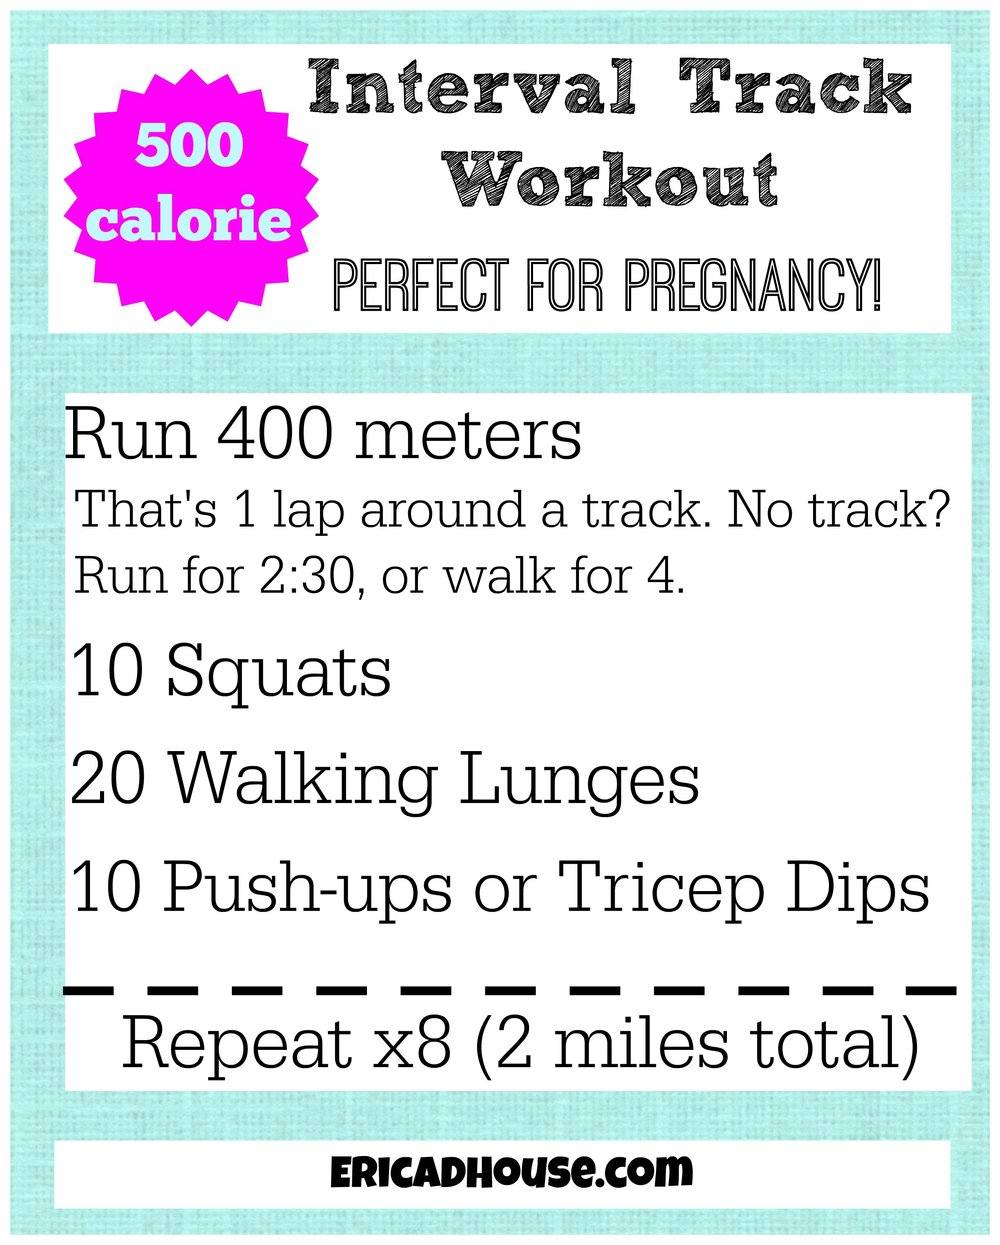 500-calorie-interval-track-workout-updated.jpg